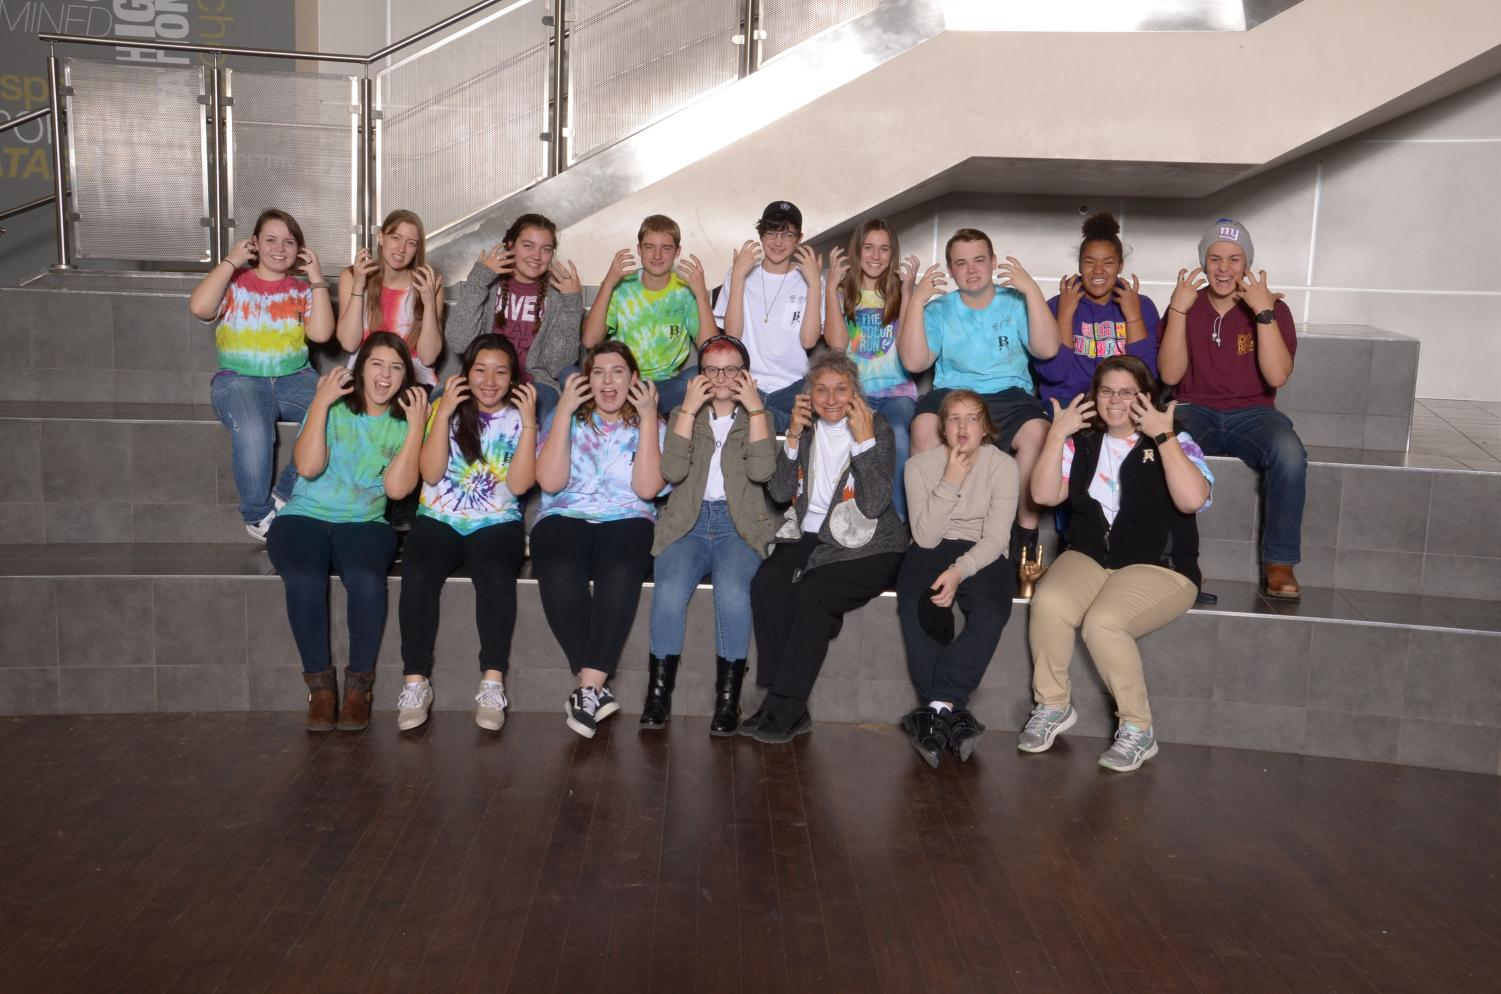 ASL Club demonstrates the sign for Tiger during their group photo.